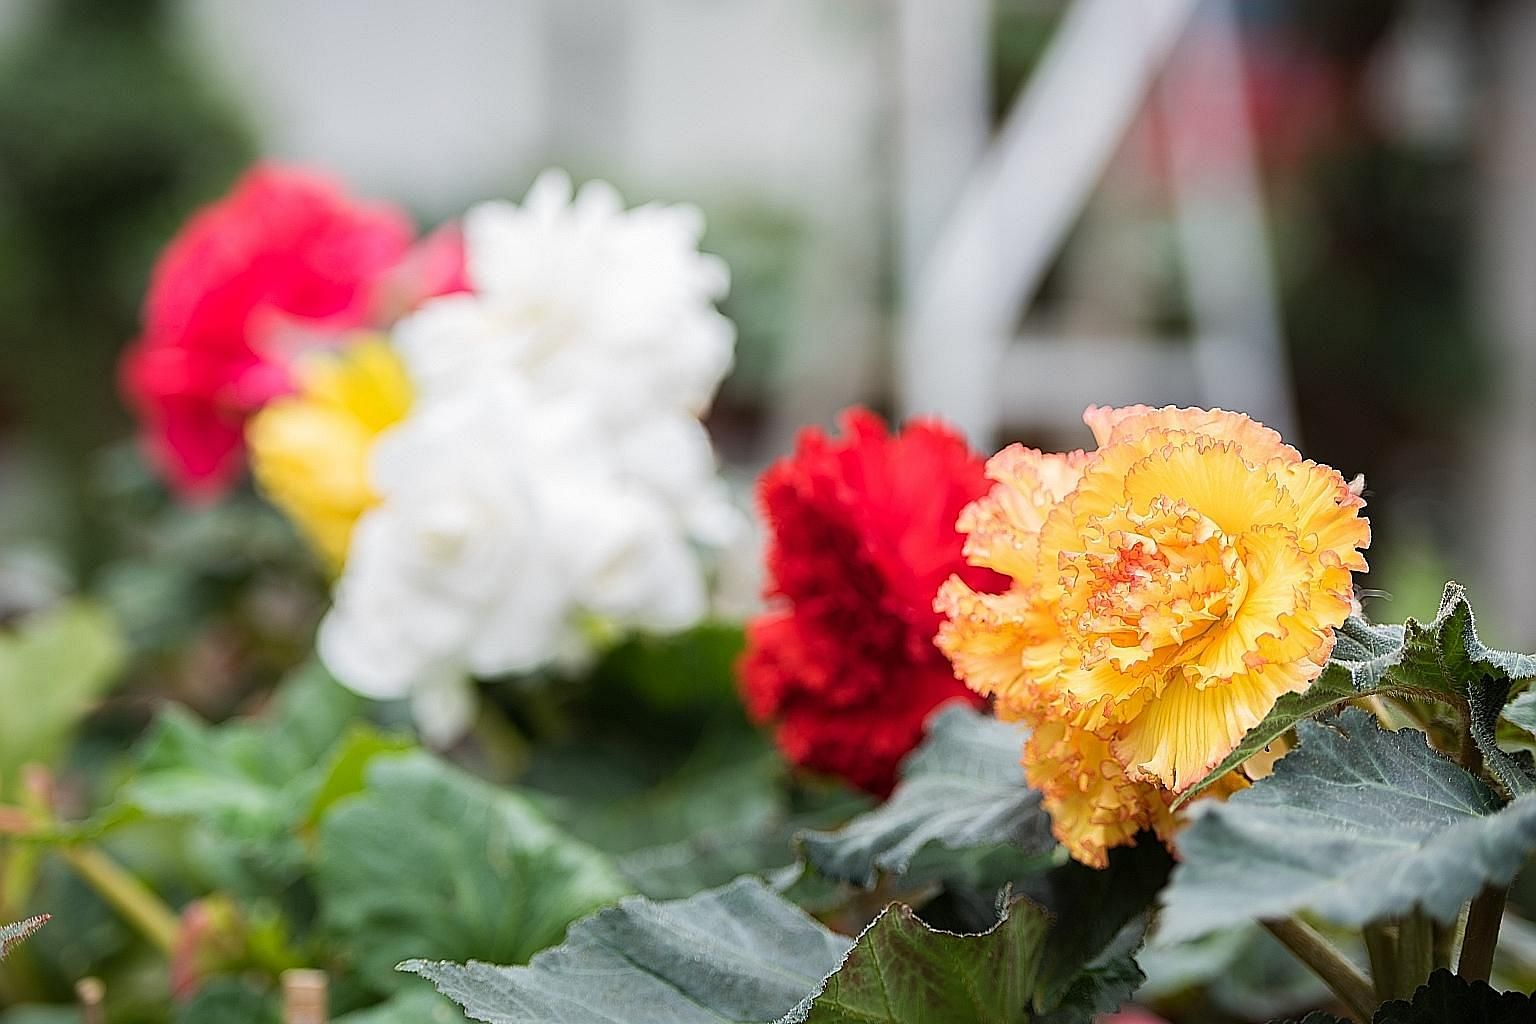 """The Begonia """"Prima Donna Sunburst"""" (above, foreground) and Begonia """"Cascade Red"""" (left) are among the varieties on display."""